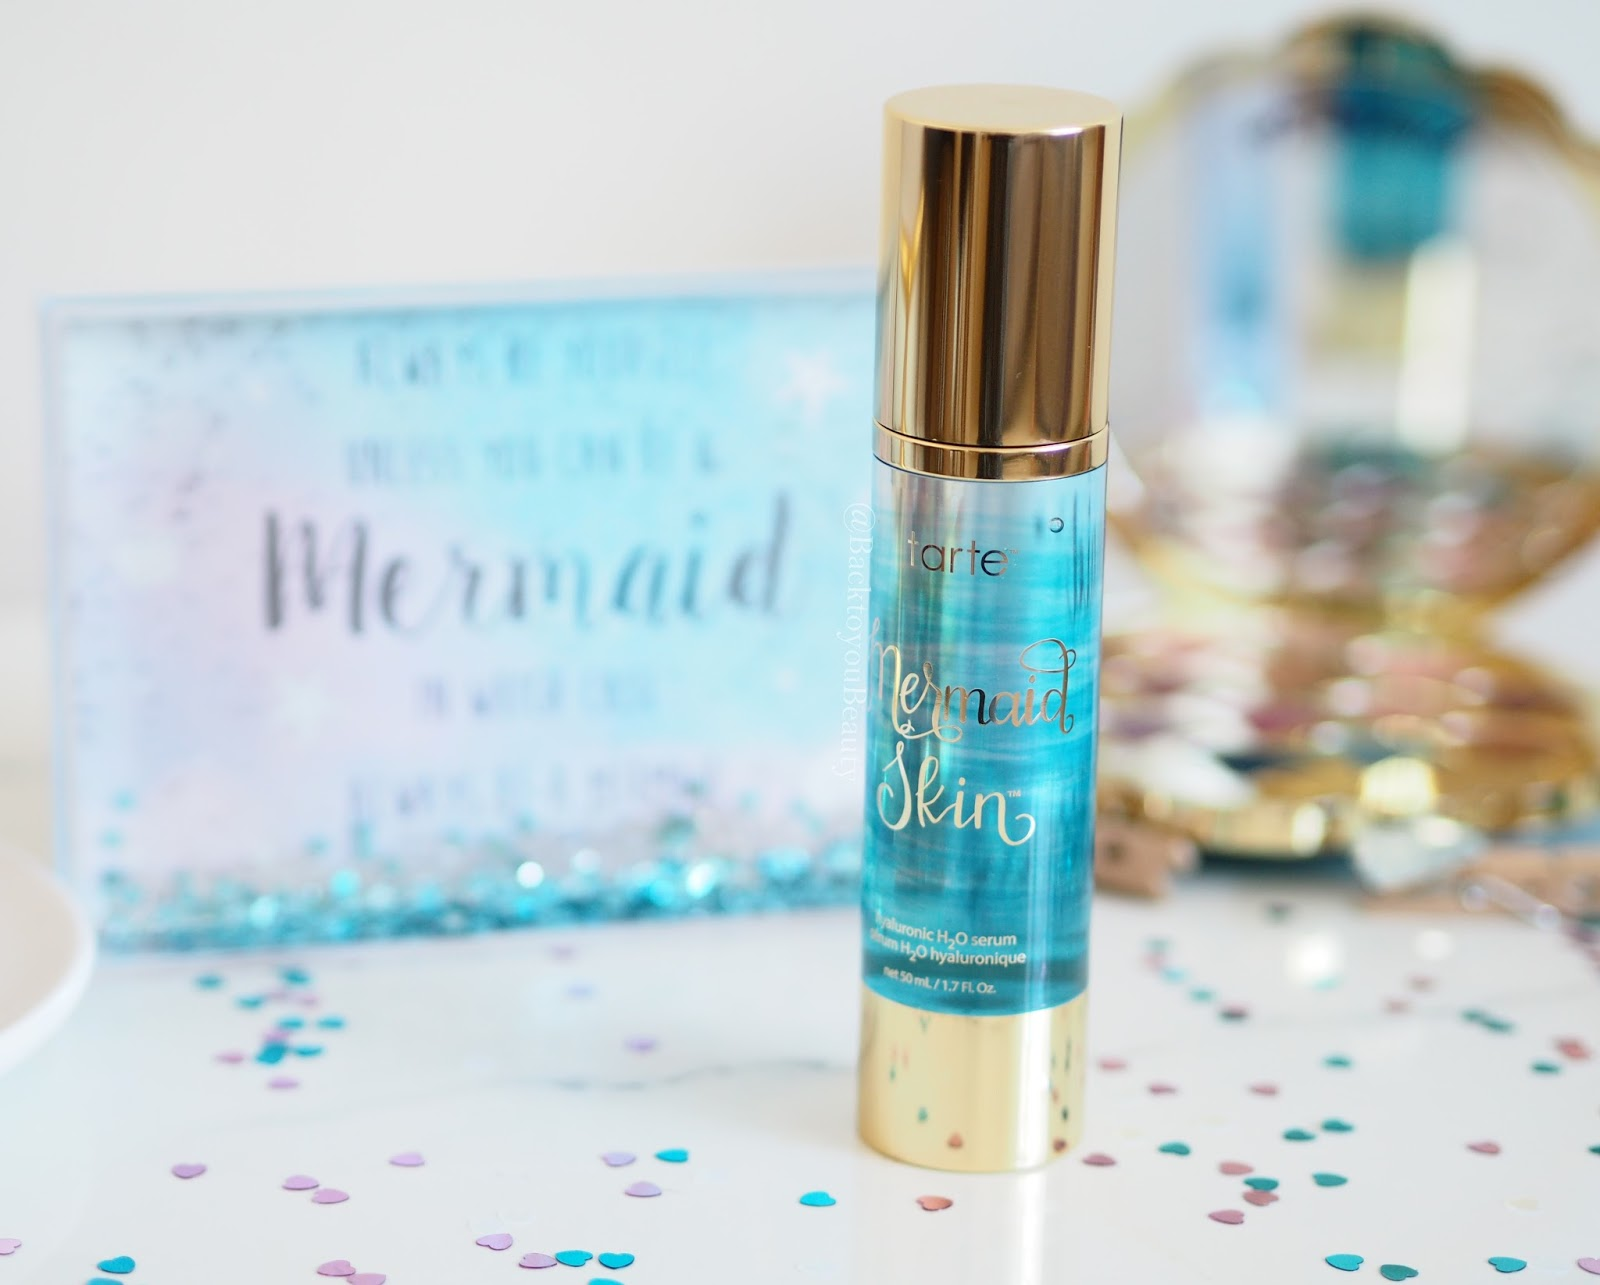 Tarte mermaid skin serum